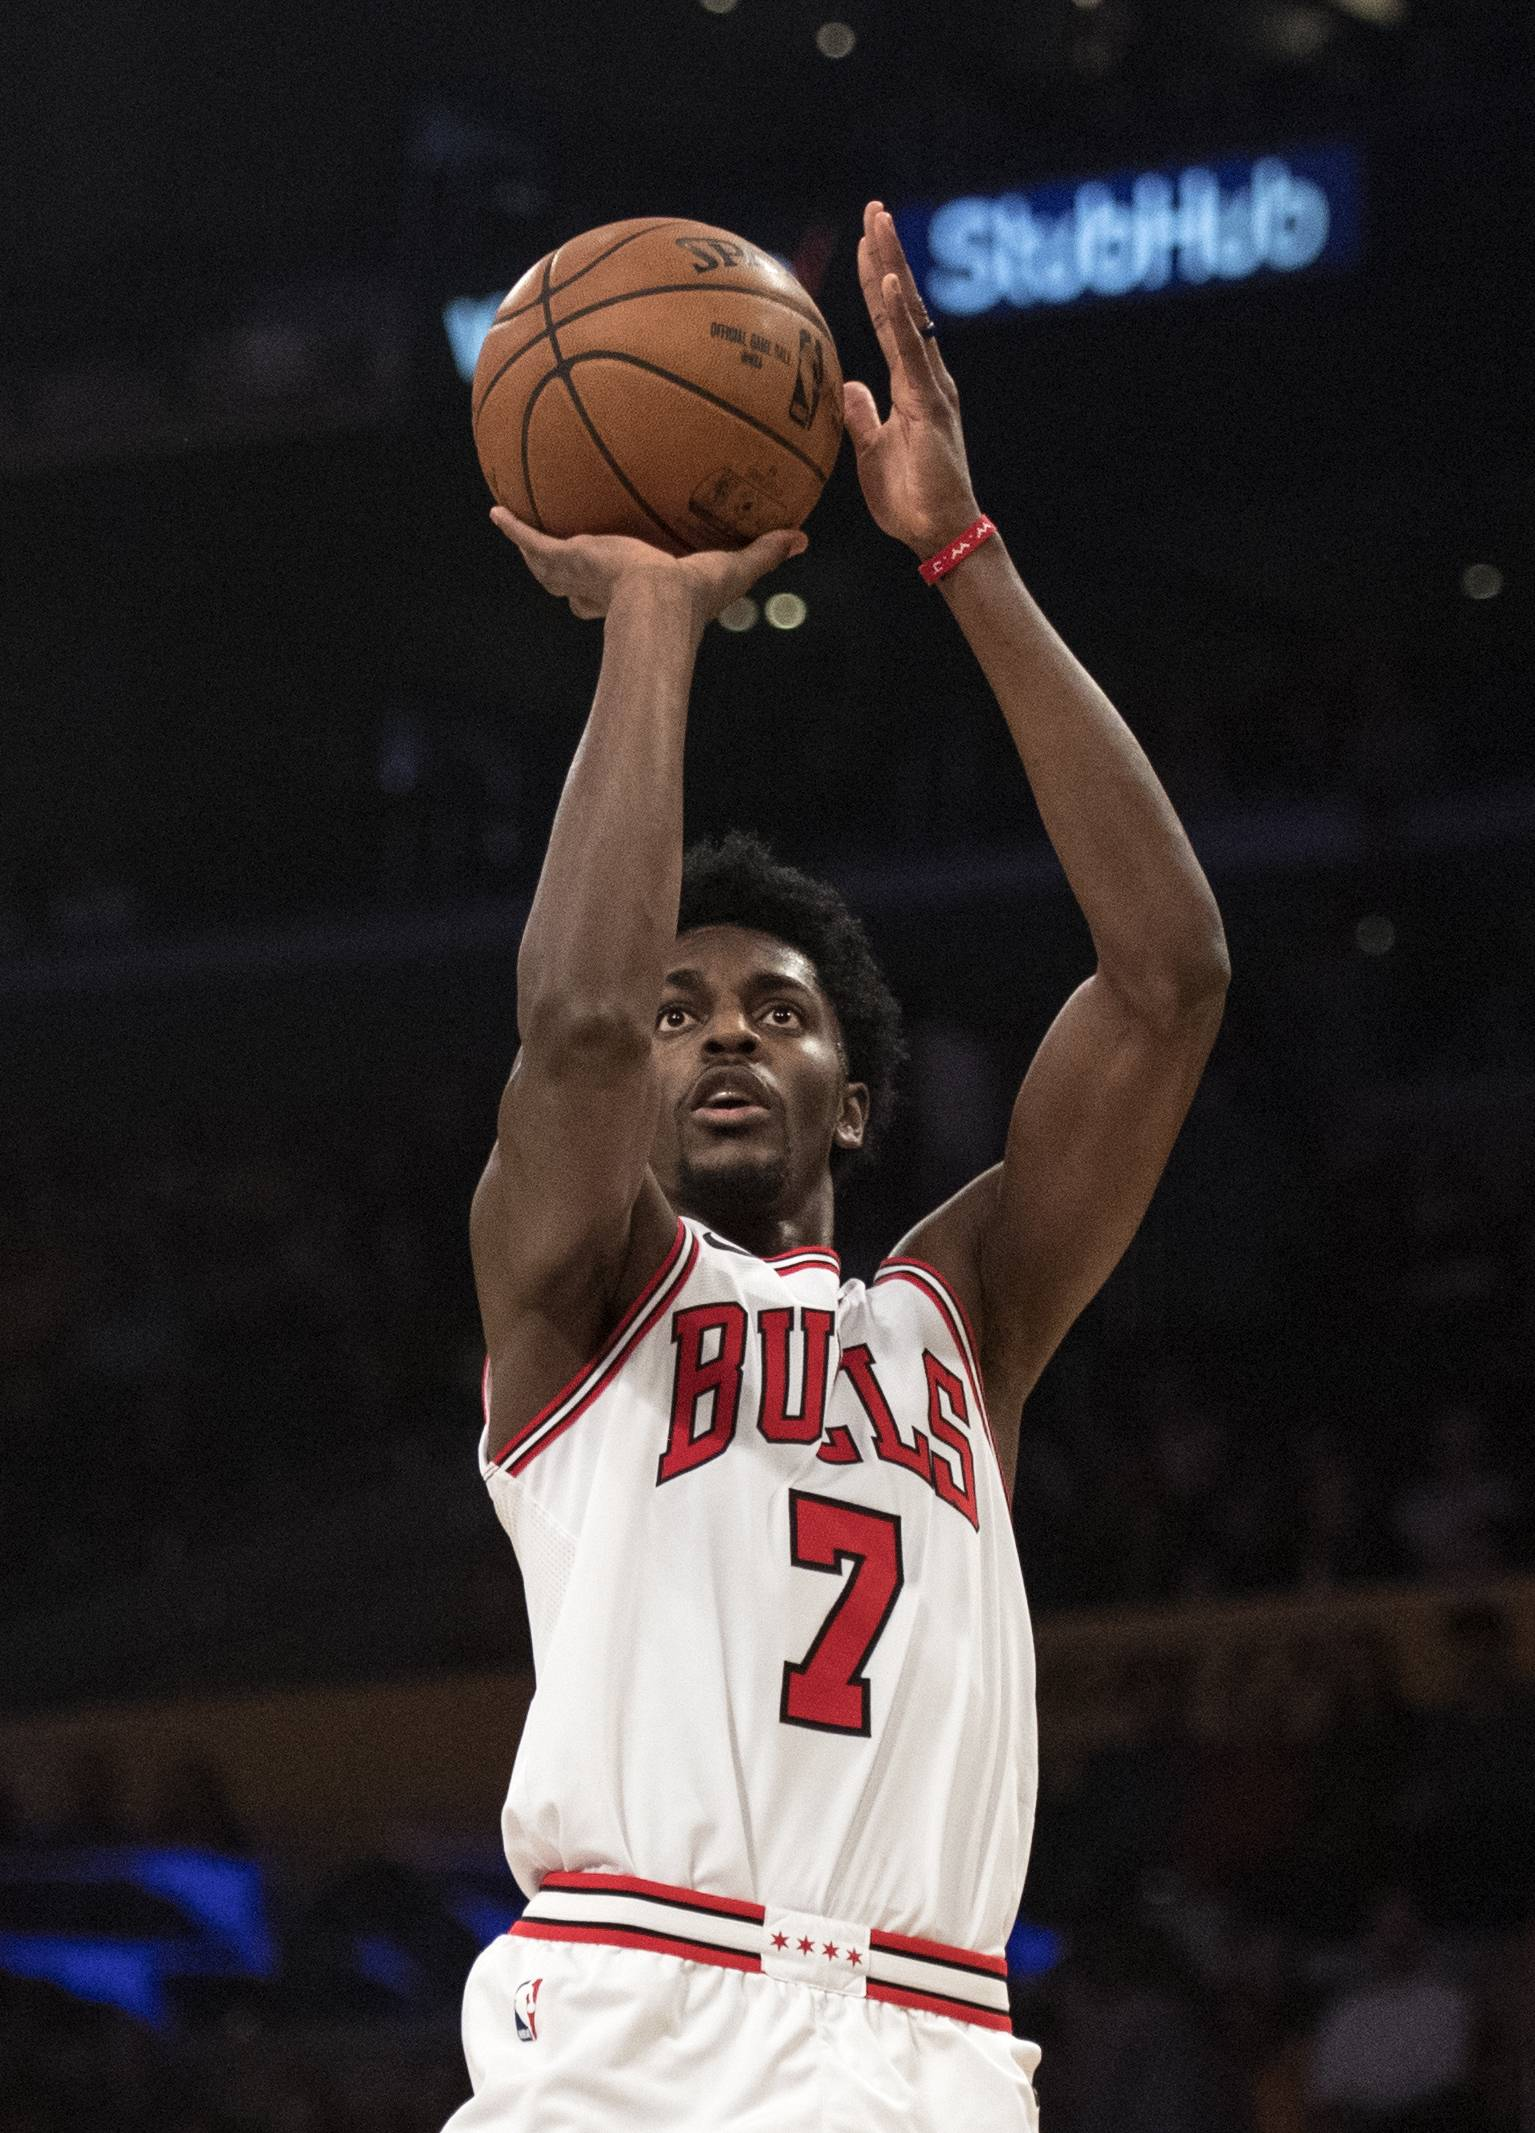 Chicago Bulls guard Justin Holiday during the first half of an NBA basketball game Tuesday, Nov. 21, 2017, in Los Angeles.